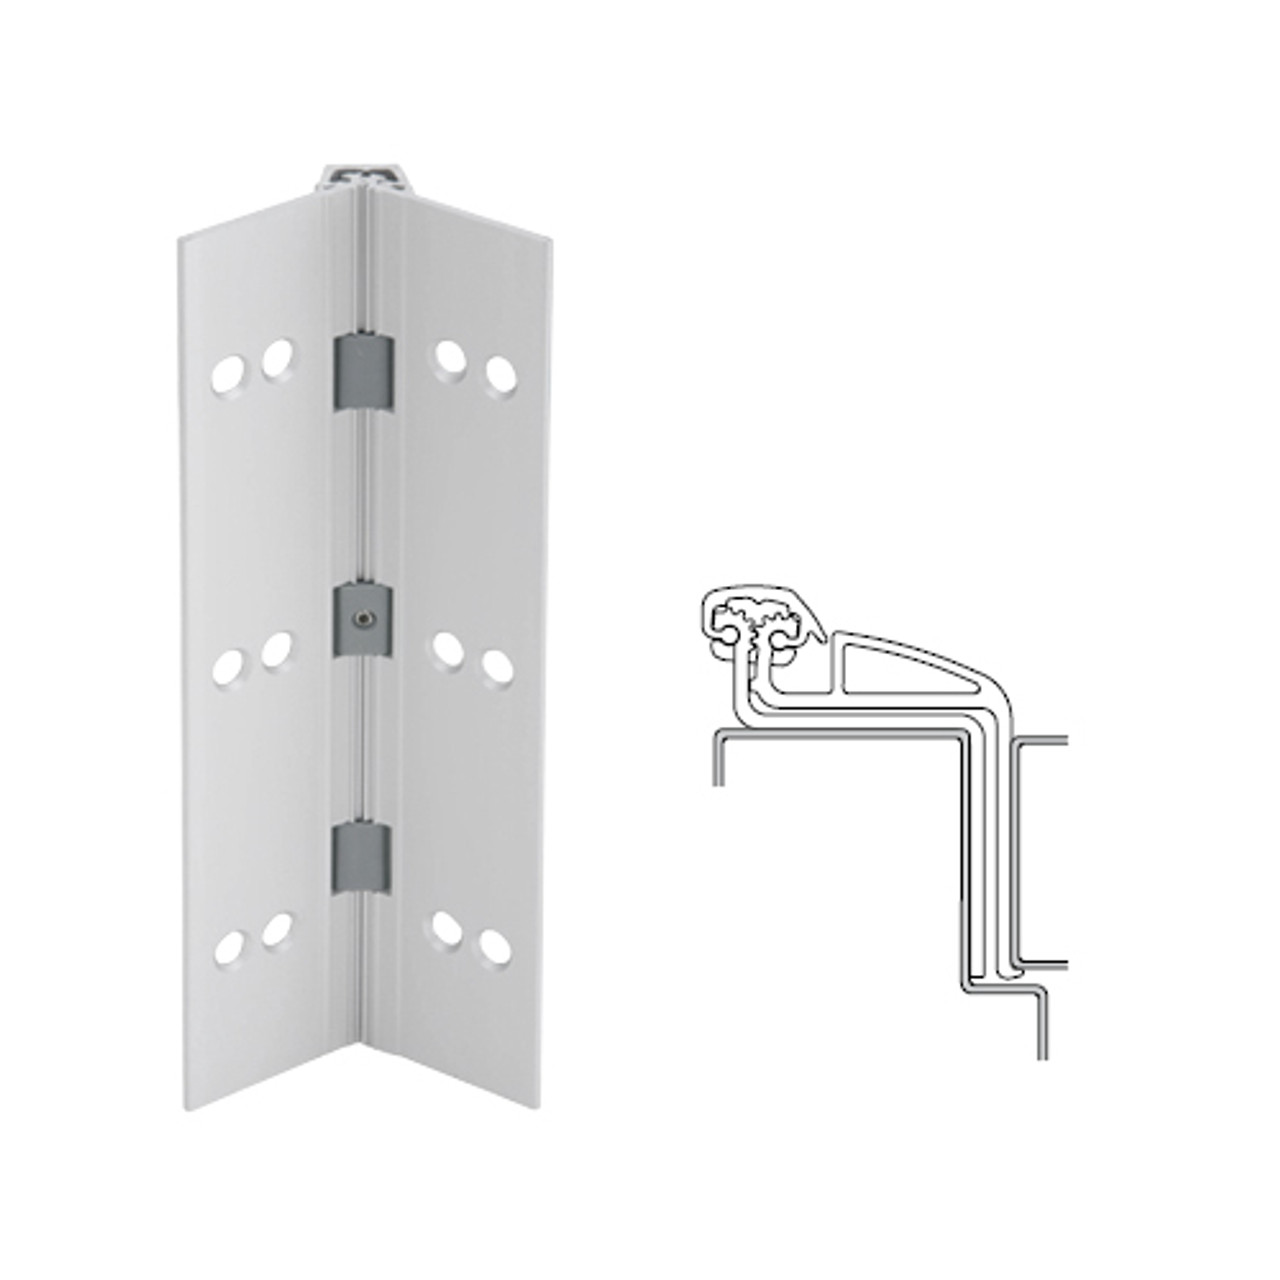 041XY-US28-83-TEKWD IVES Full Mortise Continuous Geared Hinges with Wood Screws in Satin Aluminum